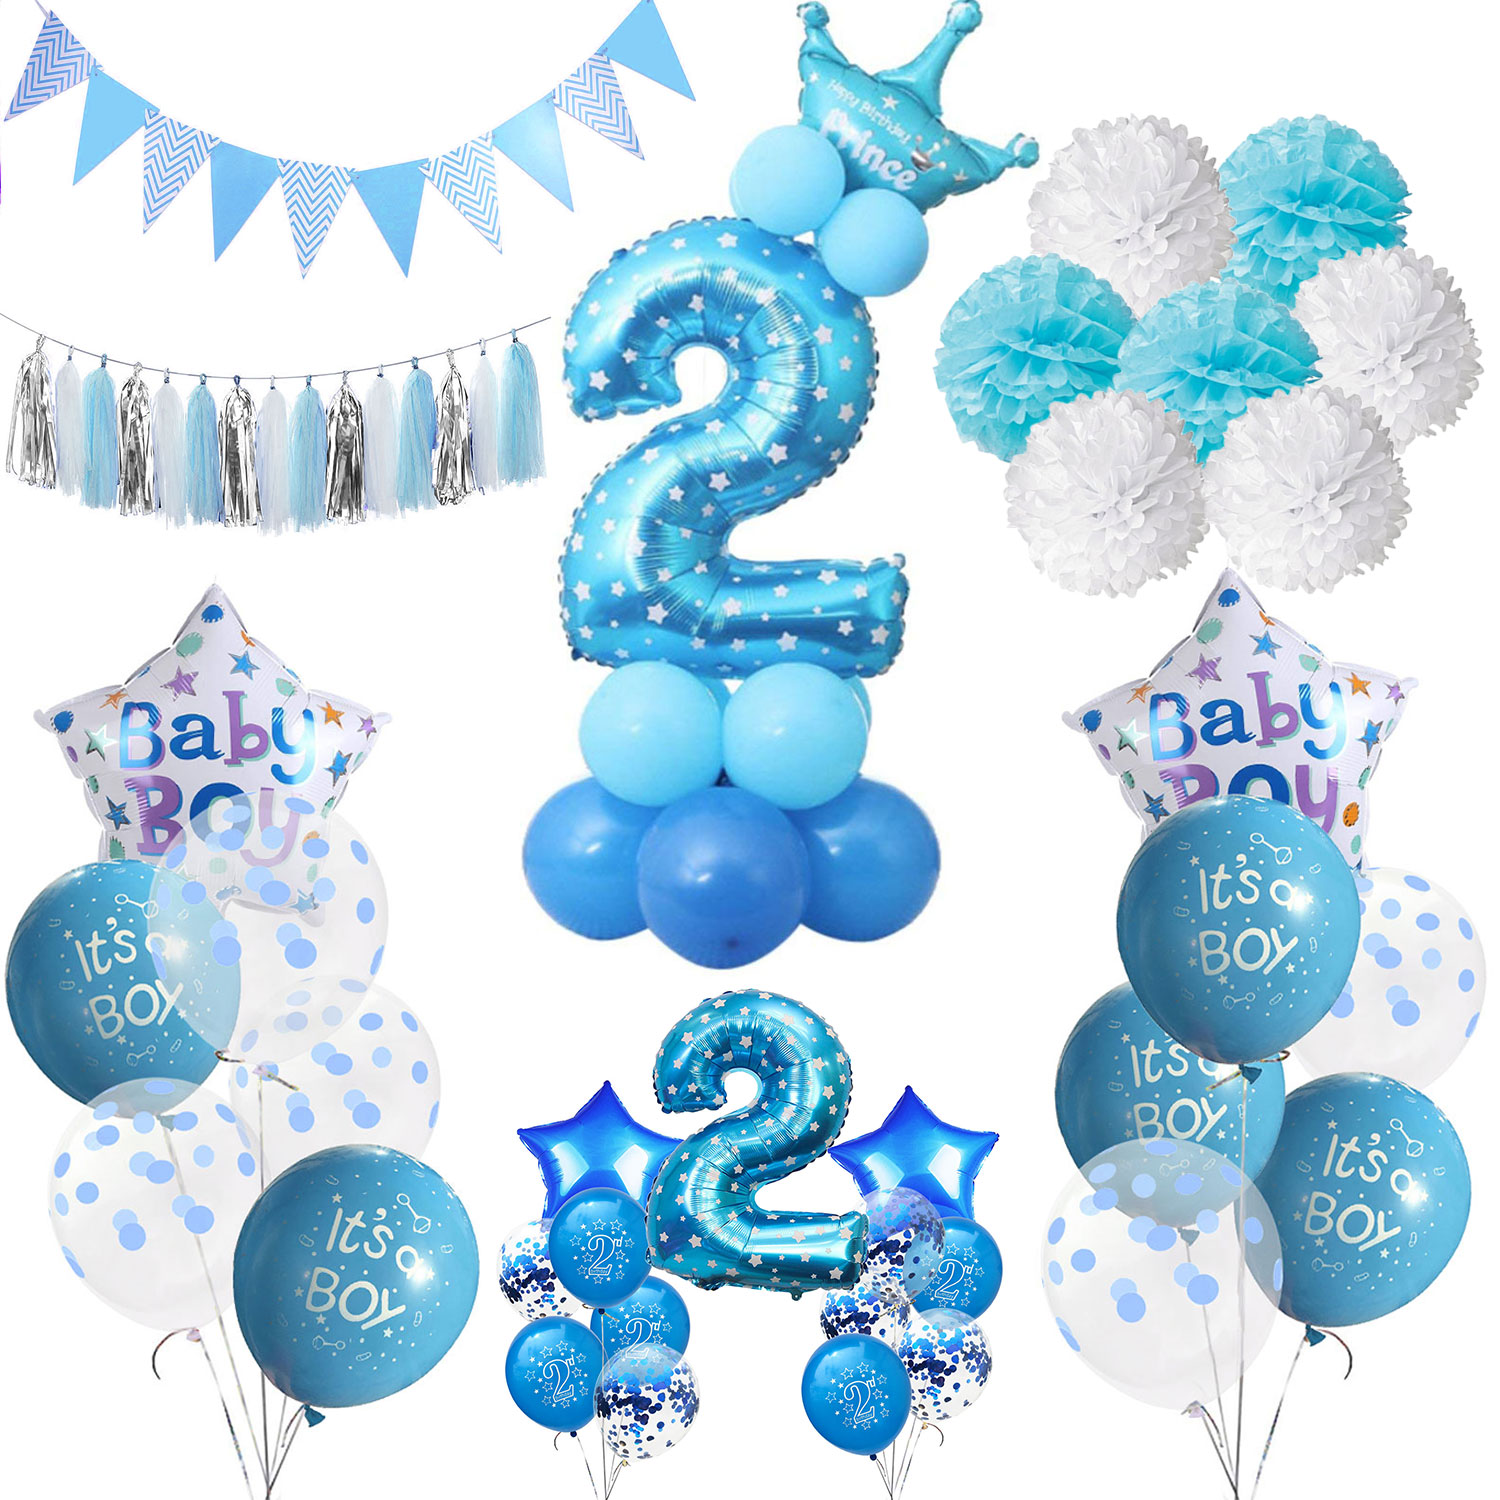 ZLJQ Boy 2 Year Old Birthday Party Decor Foil Confetti